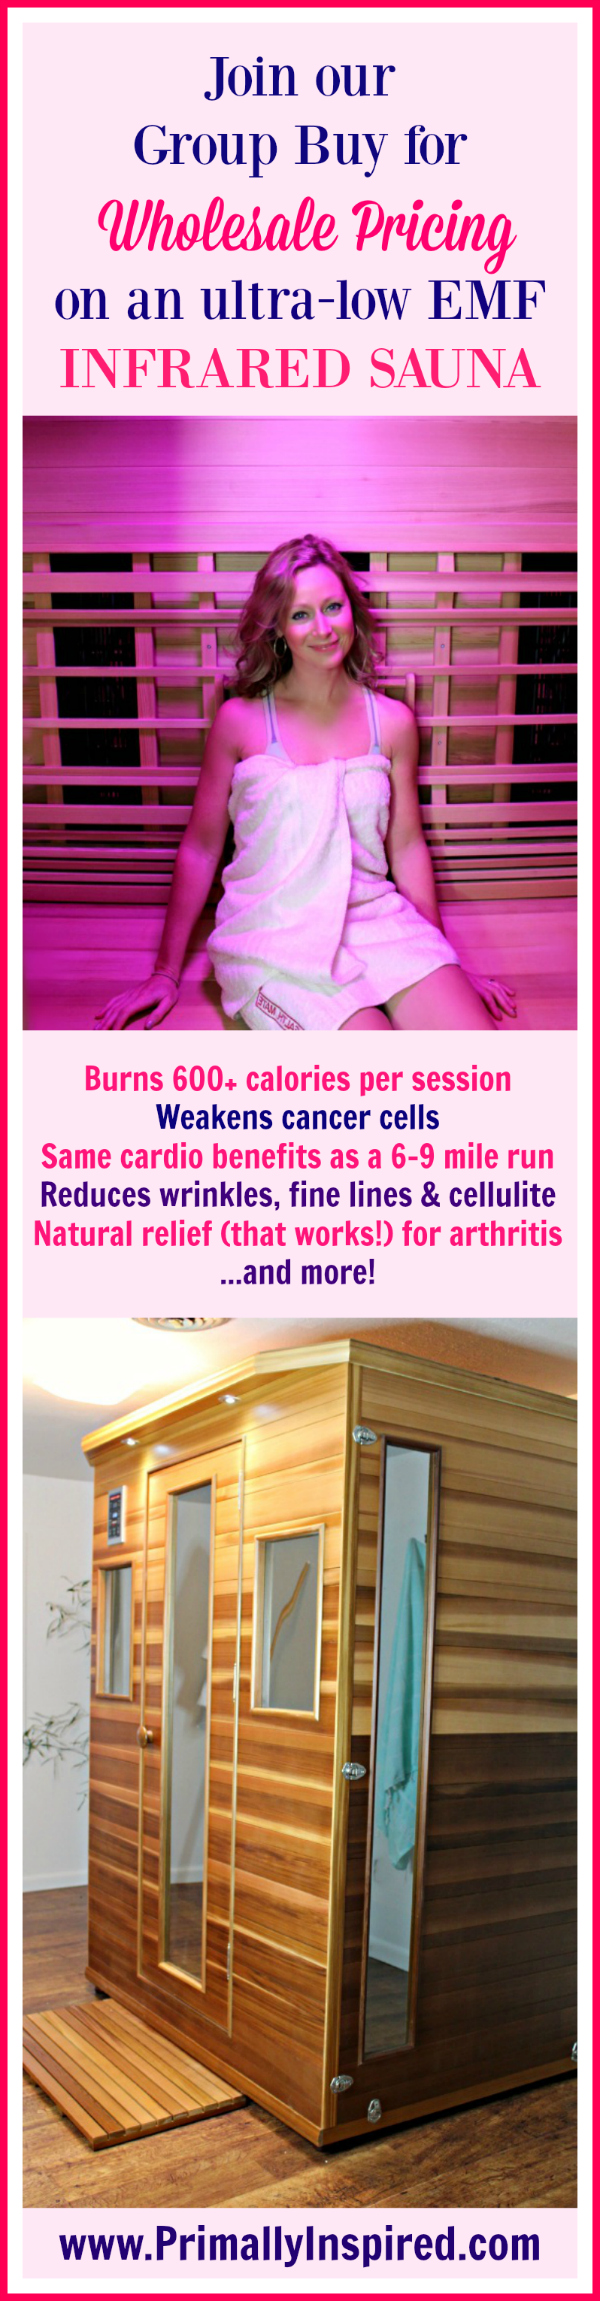 Infrared Sauna Group Buy at Primally Inspired - wholesale pricing